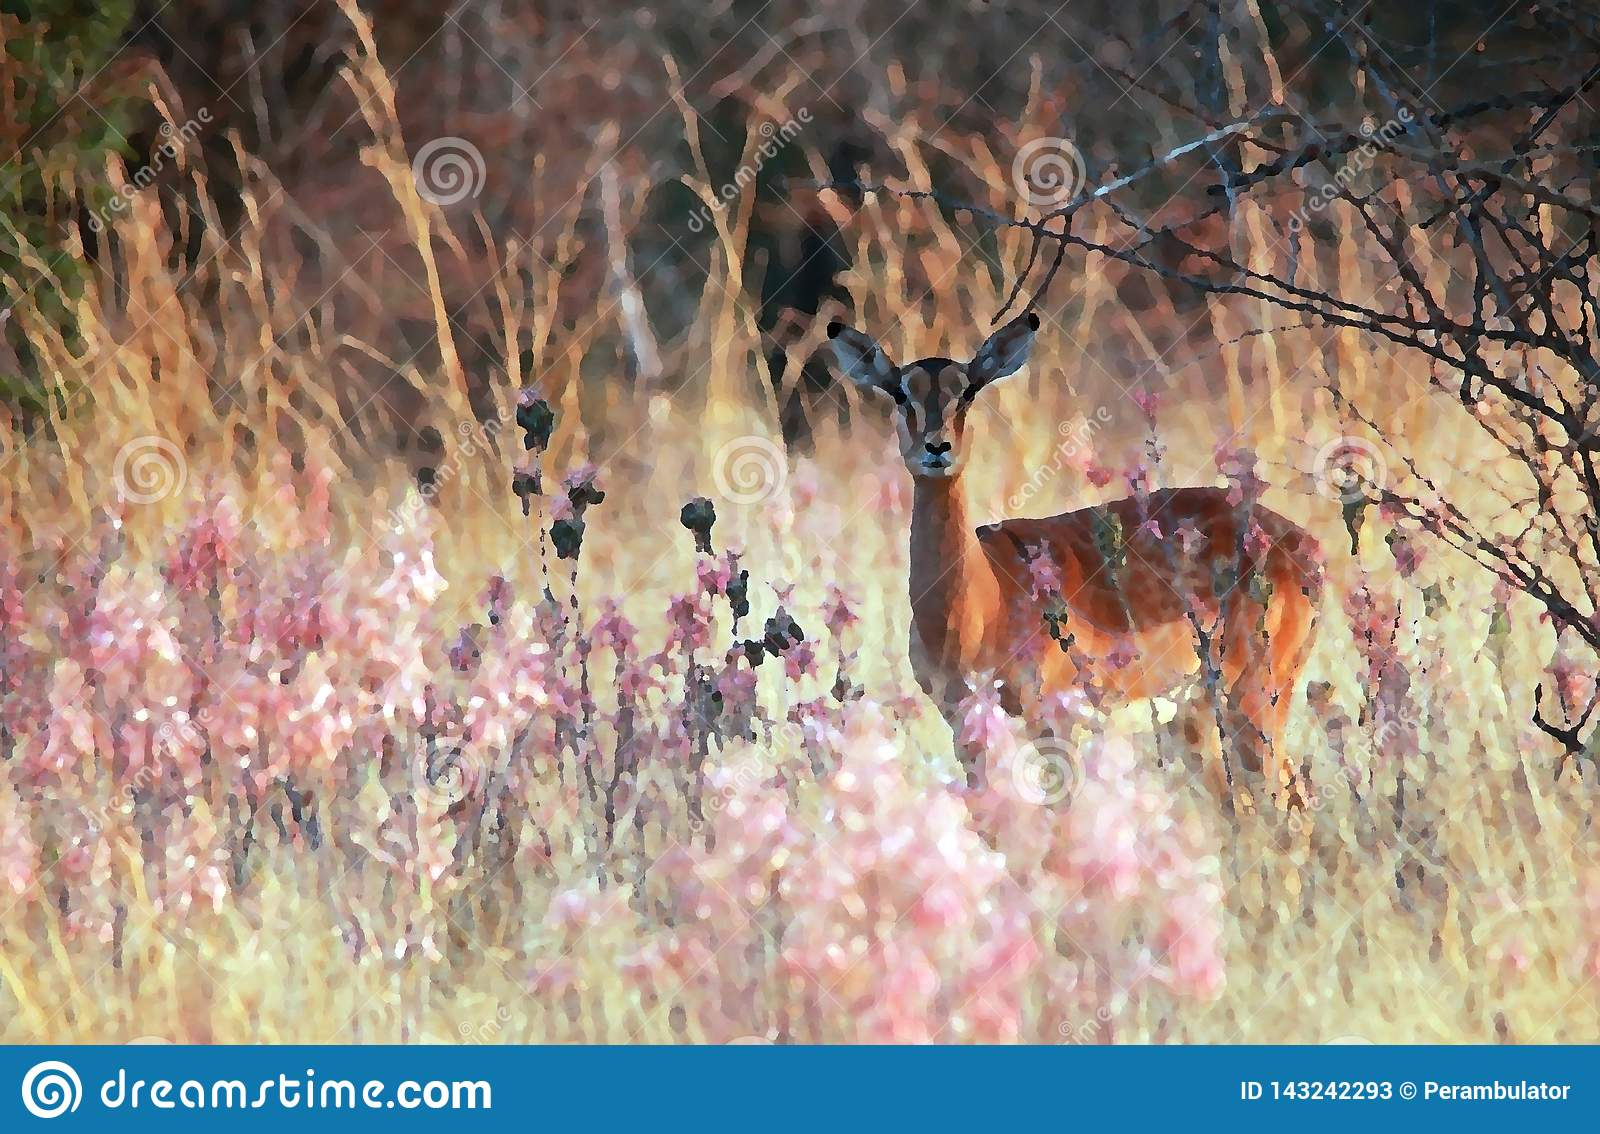 ARTISTIC EFFECT ADDED TO IMPALA BUCK IN THE VELD